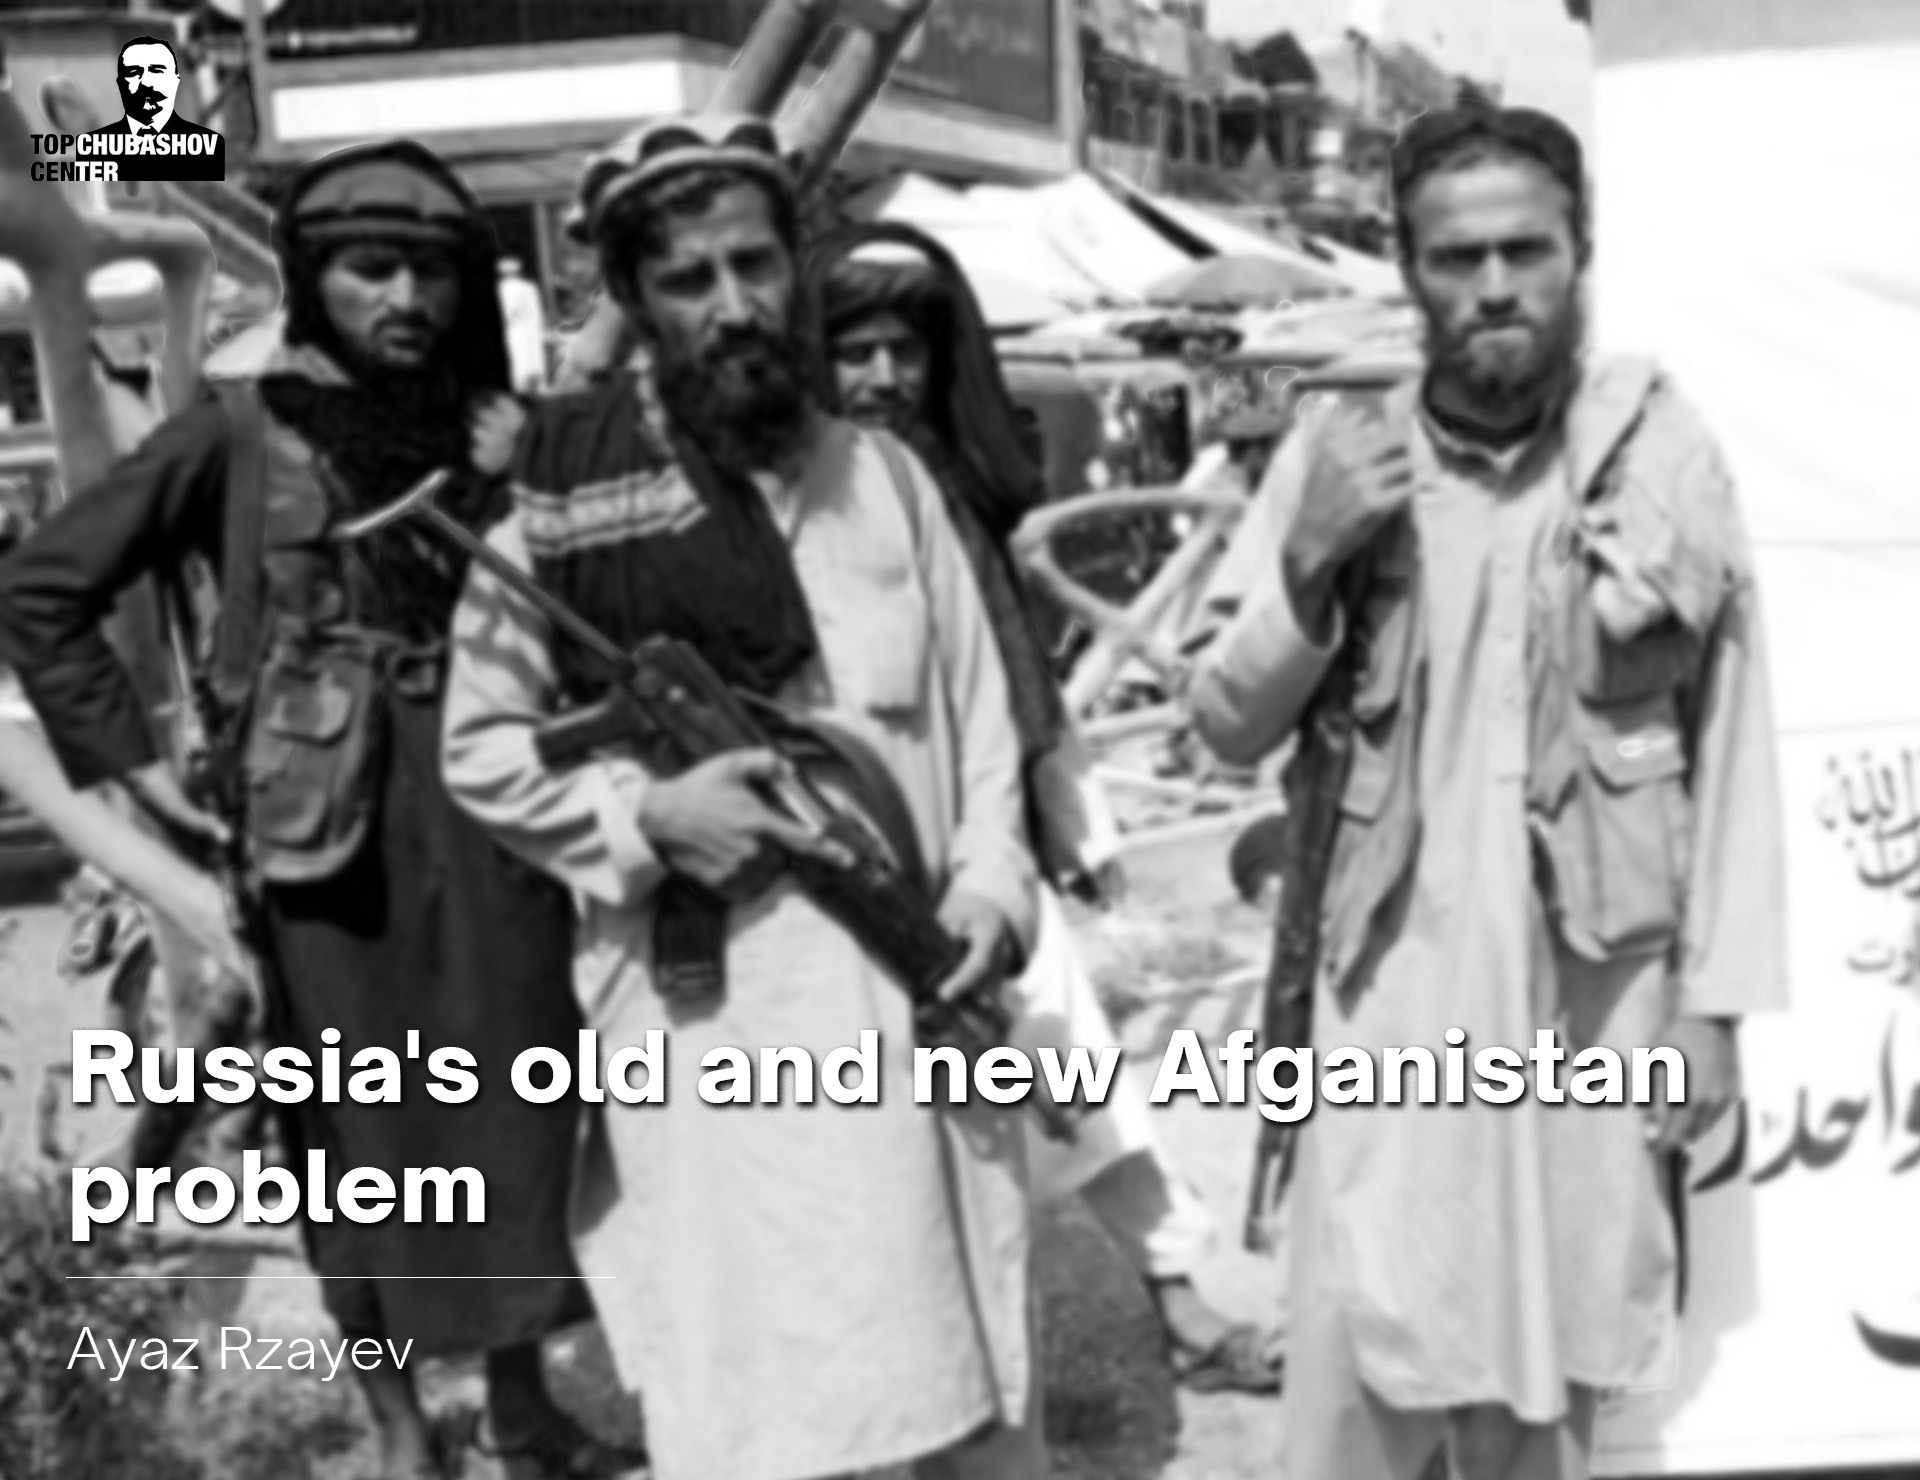 Russia's old and new Afganistan problem